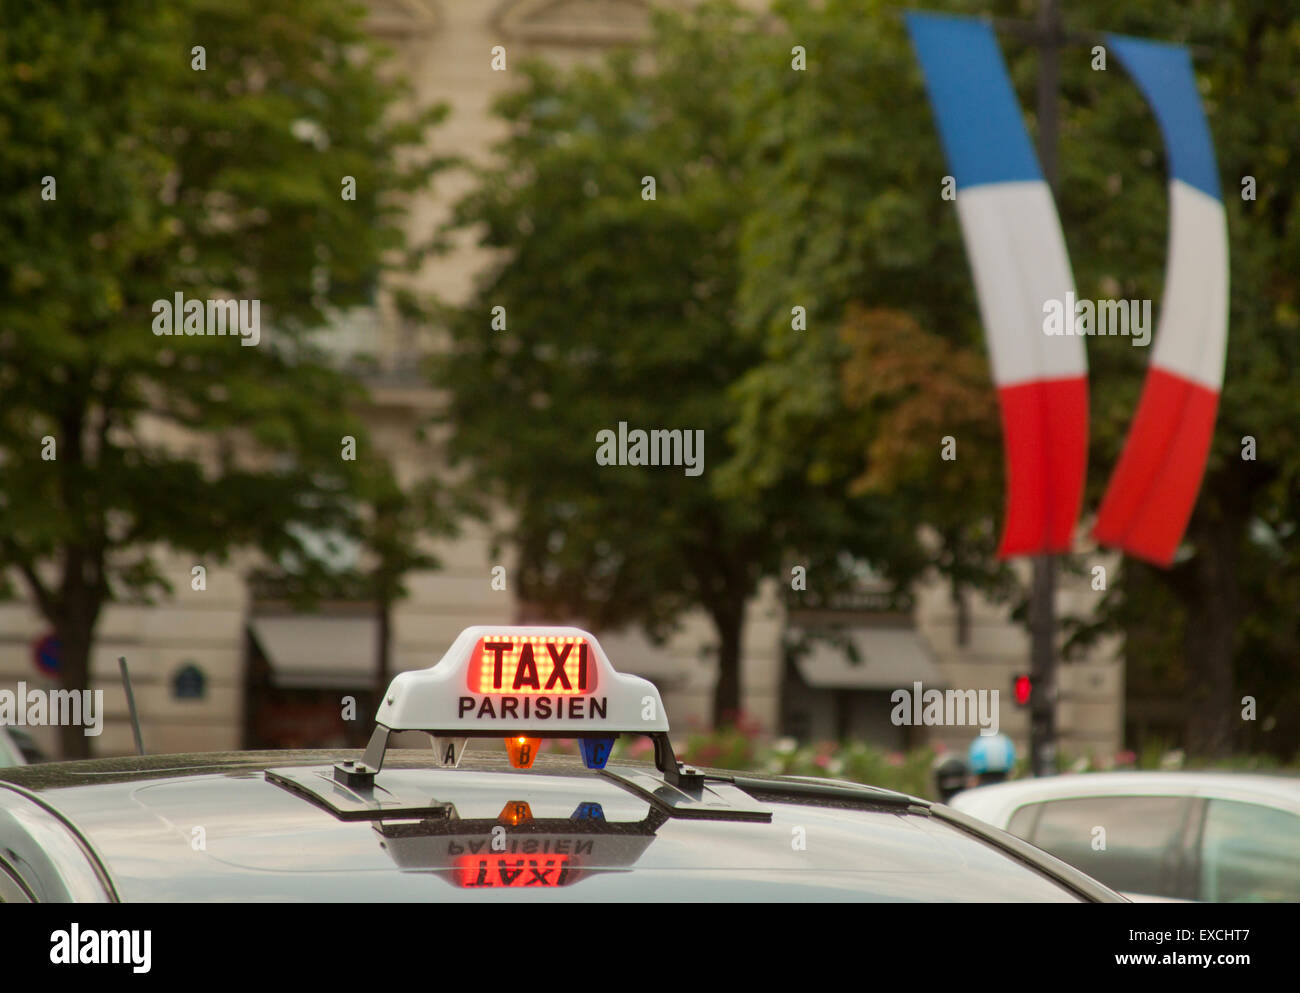 Taxi sign and its reflection on a roof of a taxicab with flags of France in background in Paris, France - Stock Image